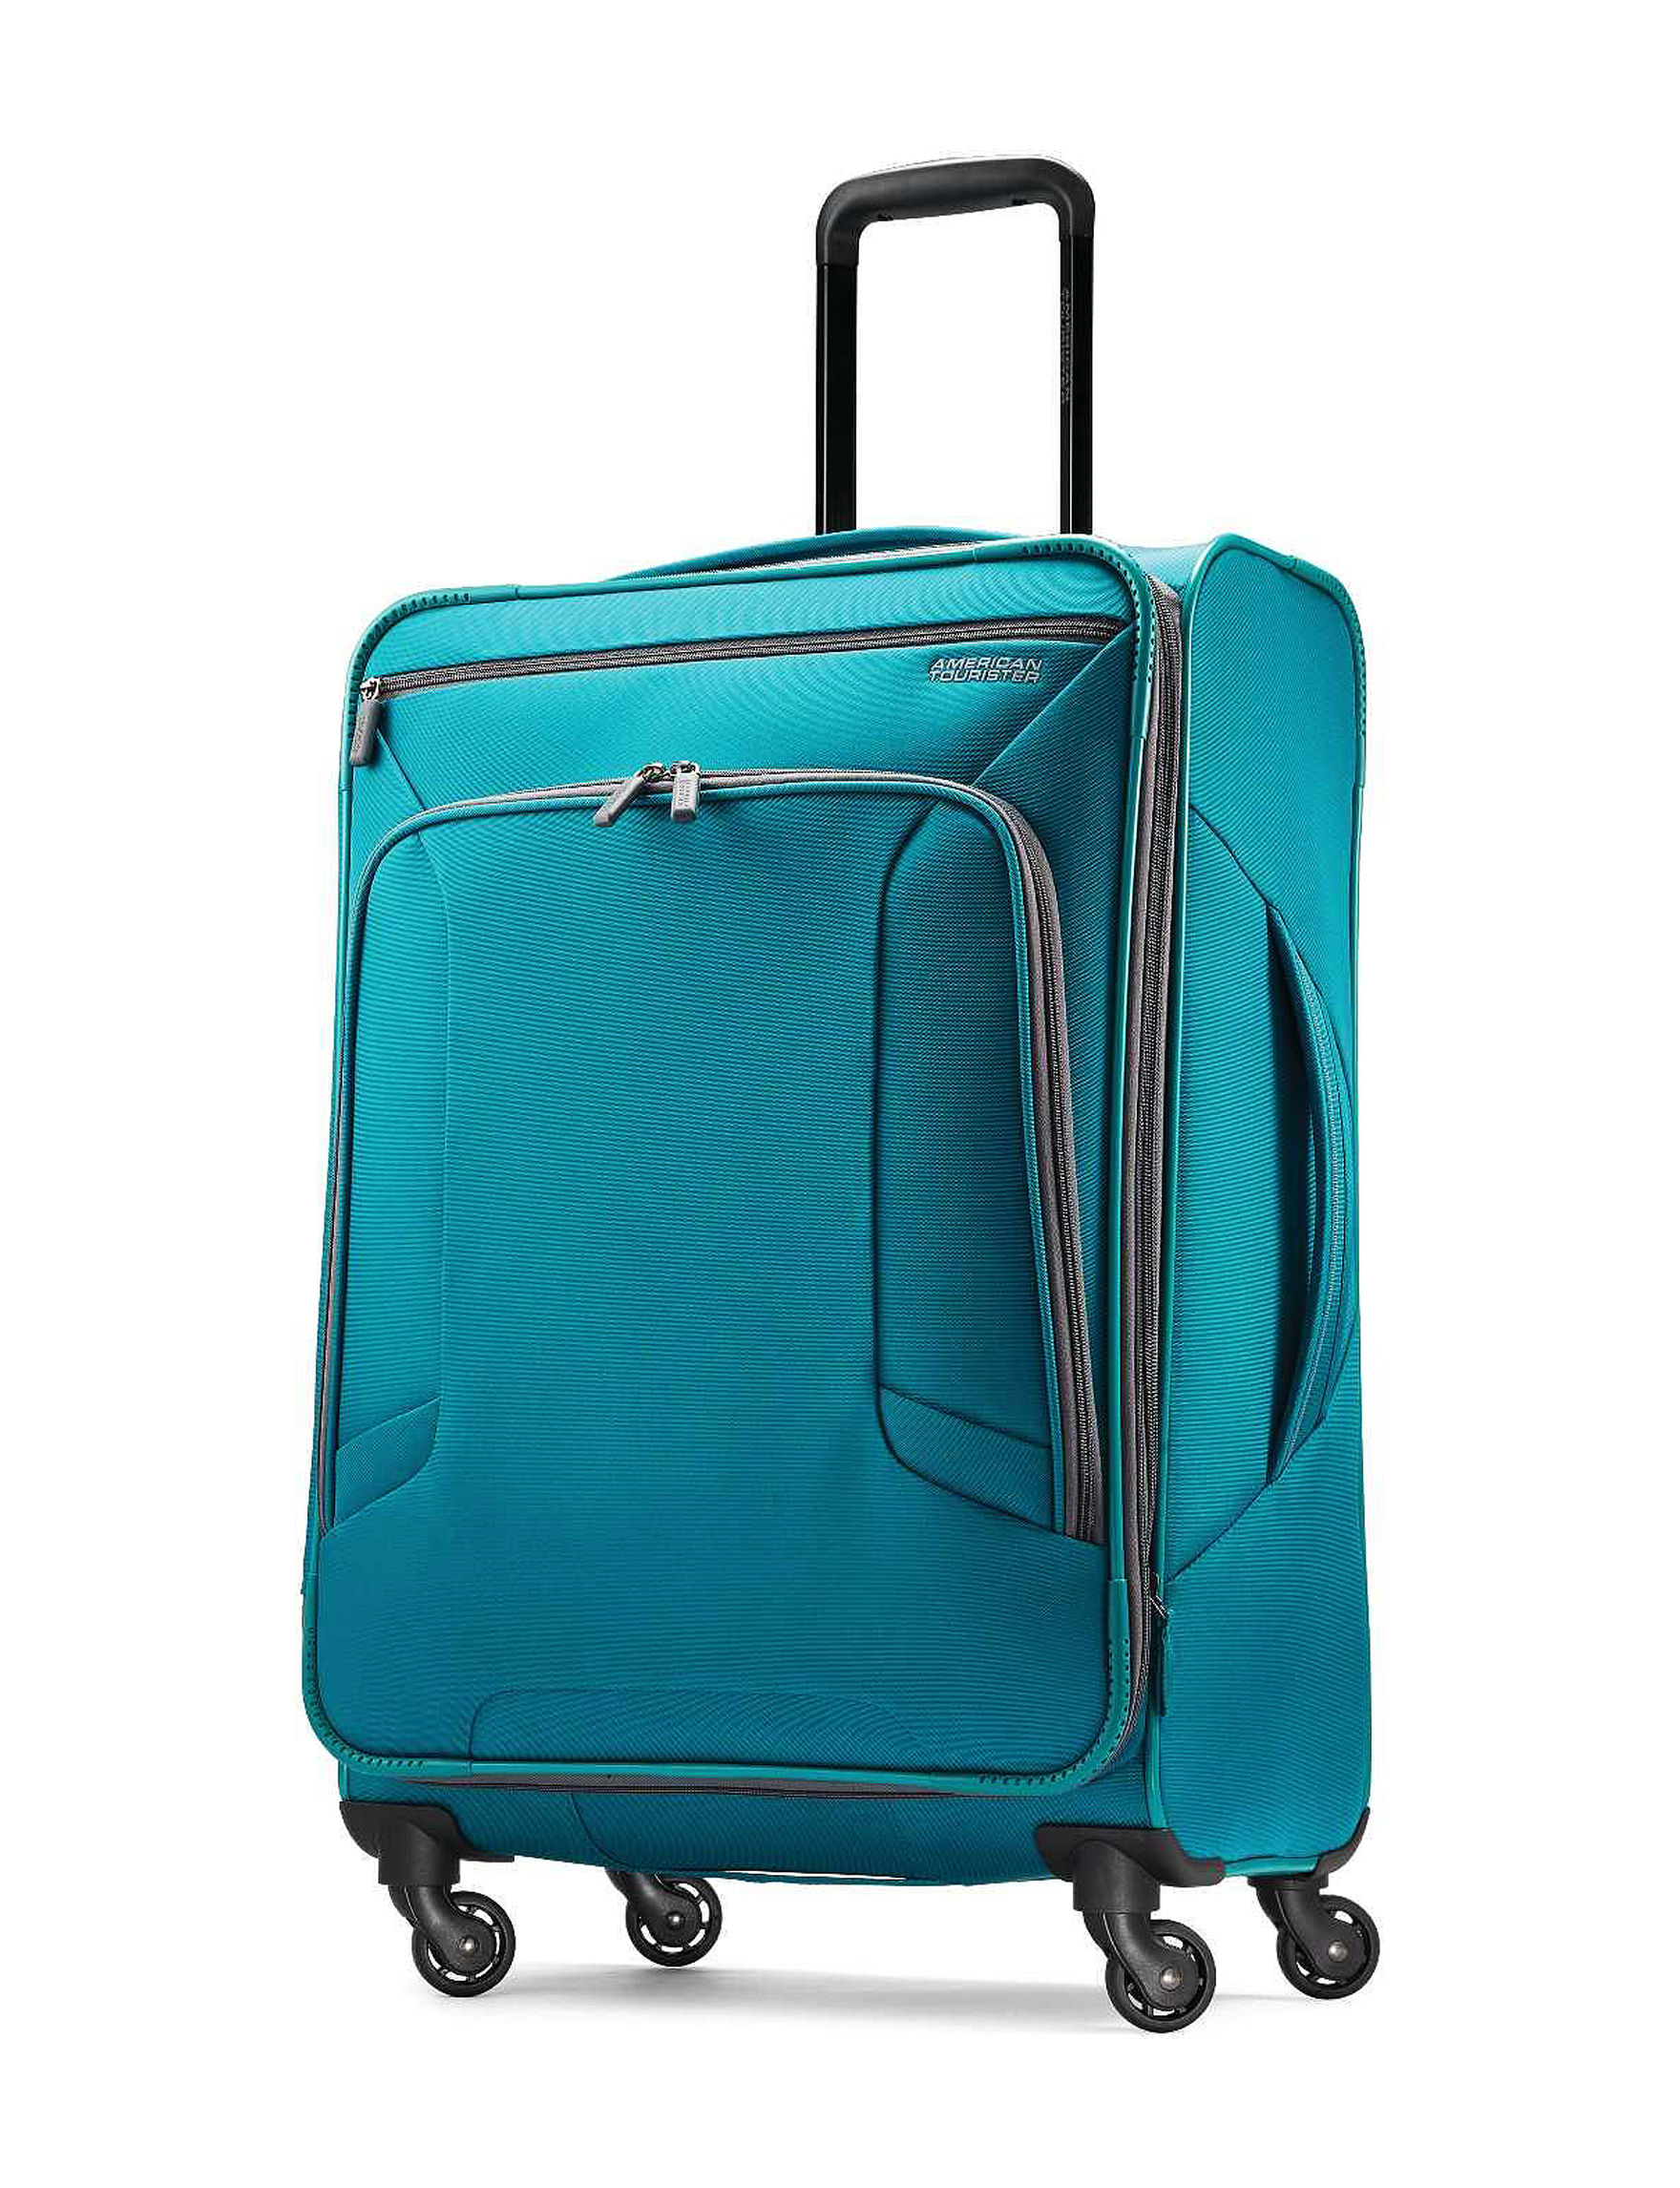 American Tourister Teal Upright Spinners